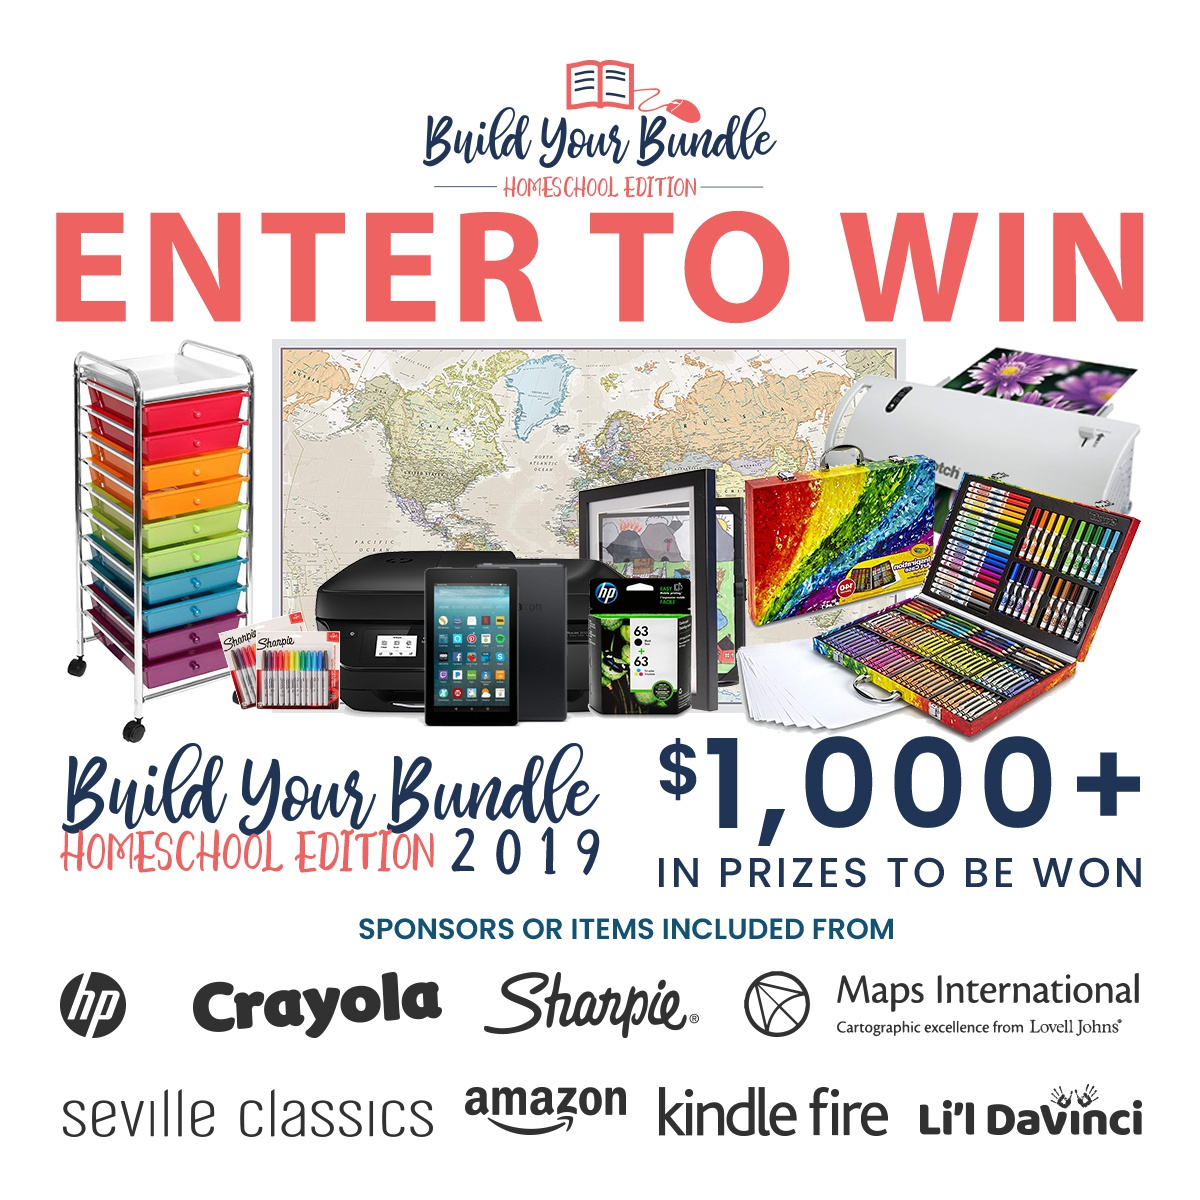 Build Your Bundle Giveaway!